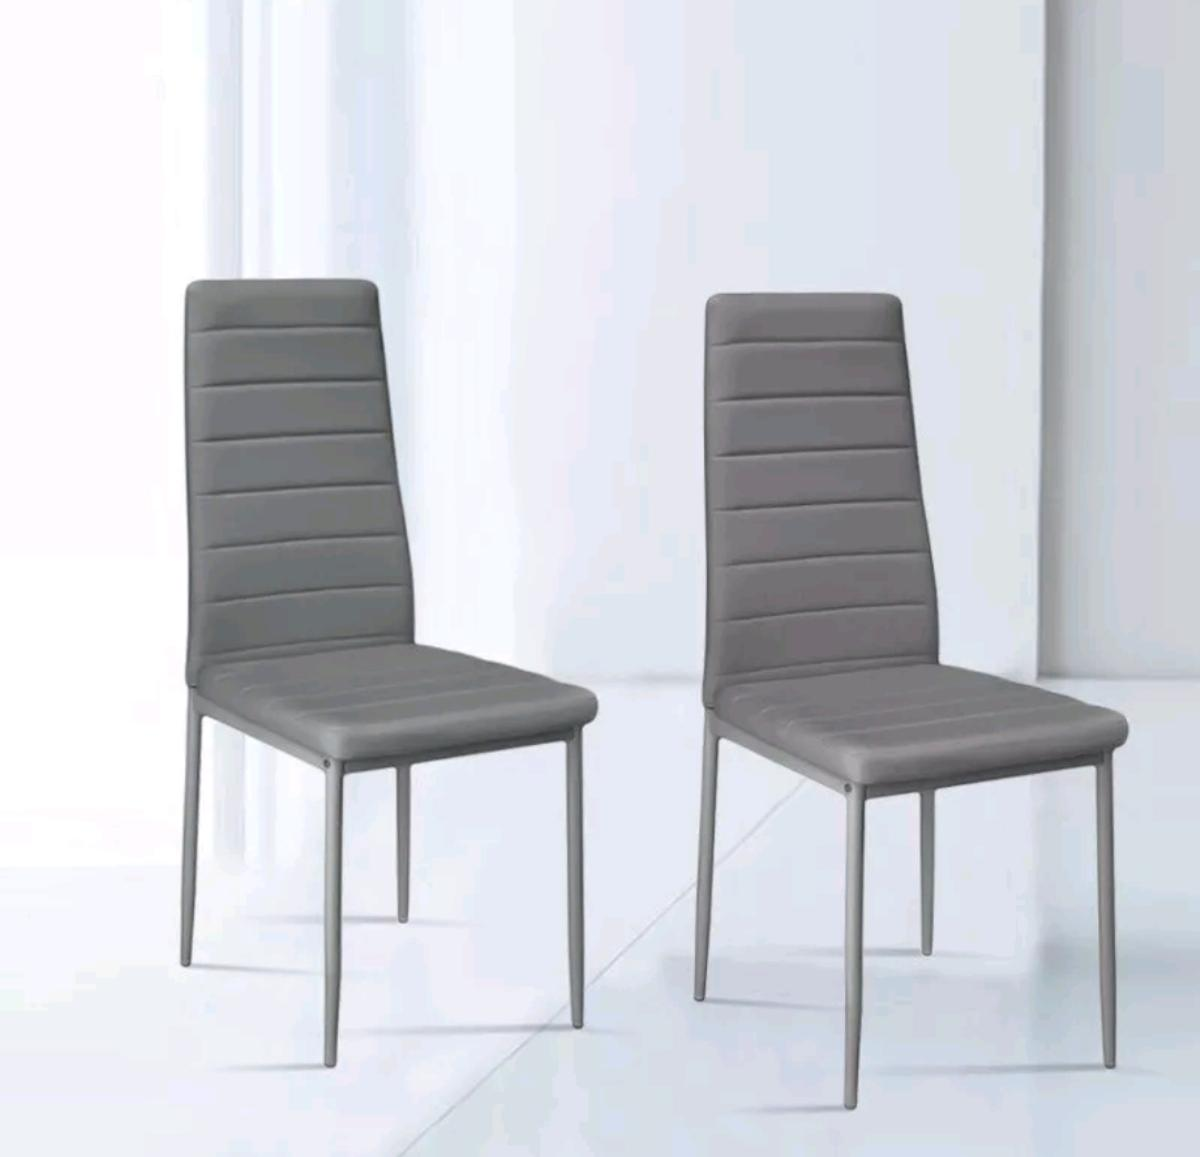 Fantastic 6X Dining Chairs Dining Room Chairs Grey Taup Unemploymentrelief Wooden Chair Designs For Living Room Unemploymentrelieforg